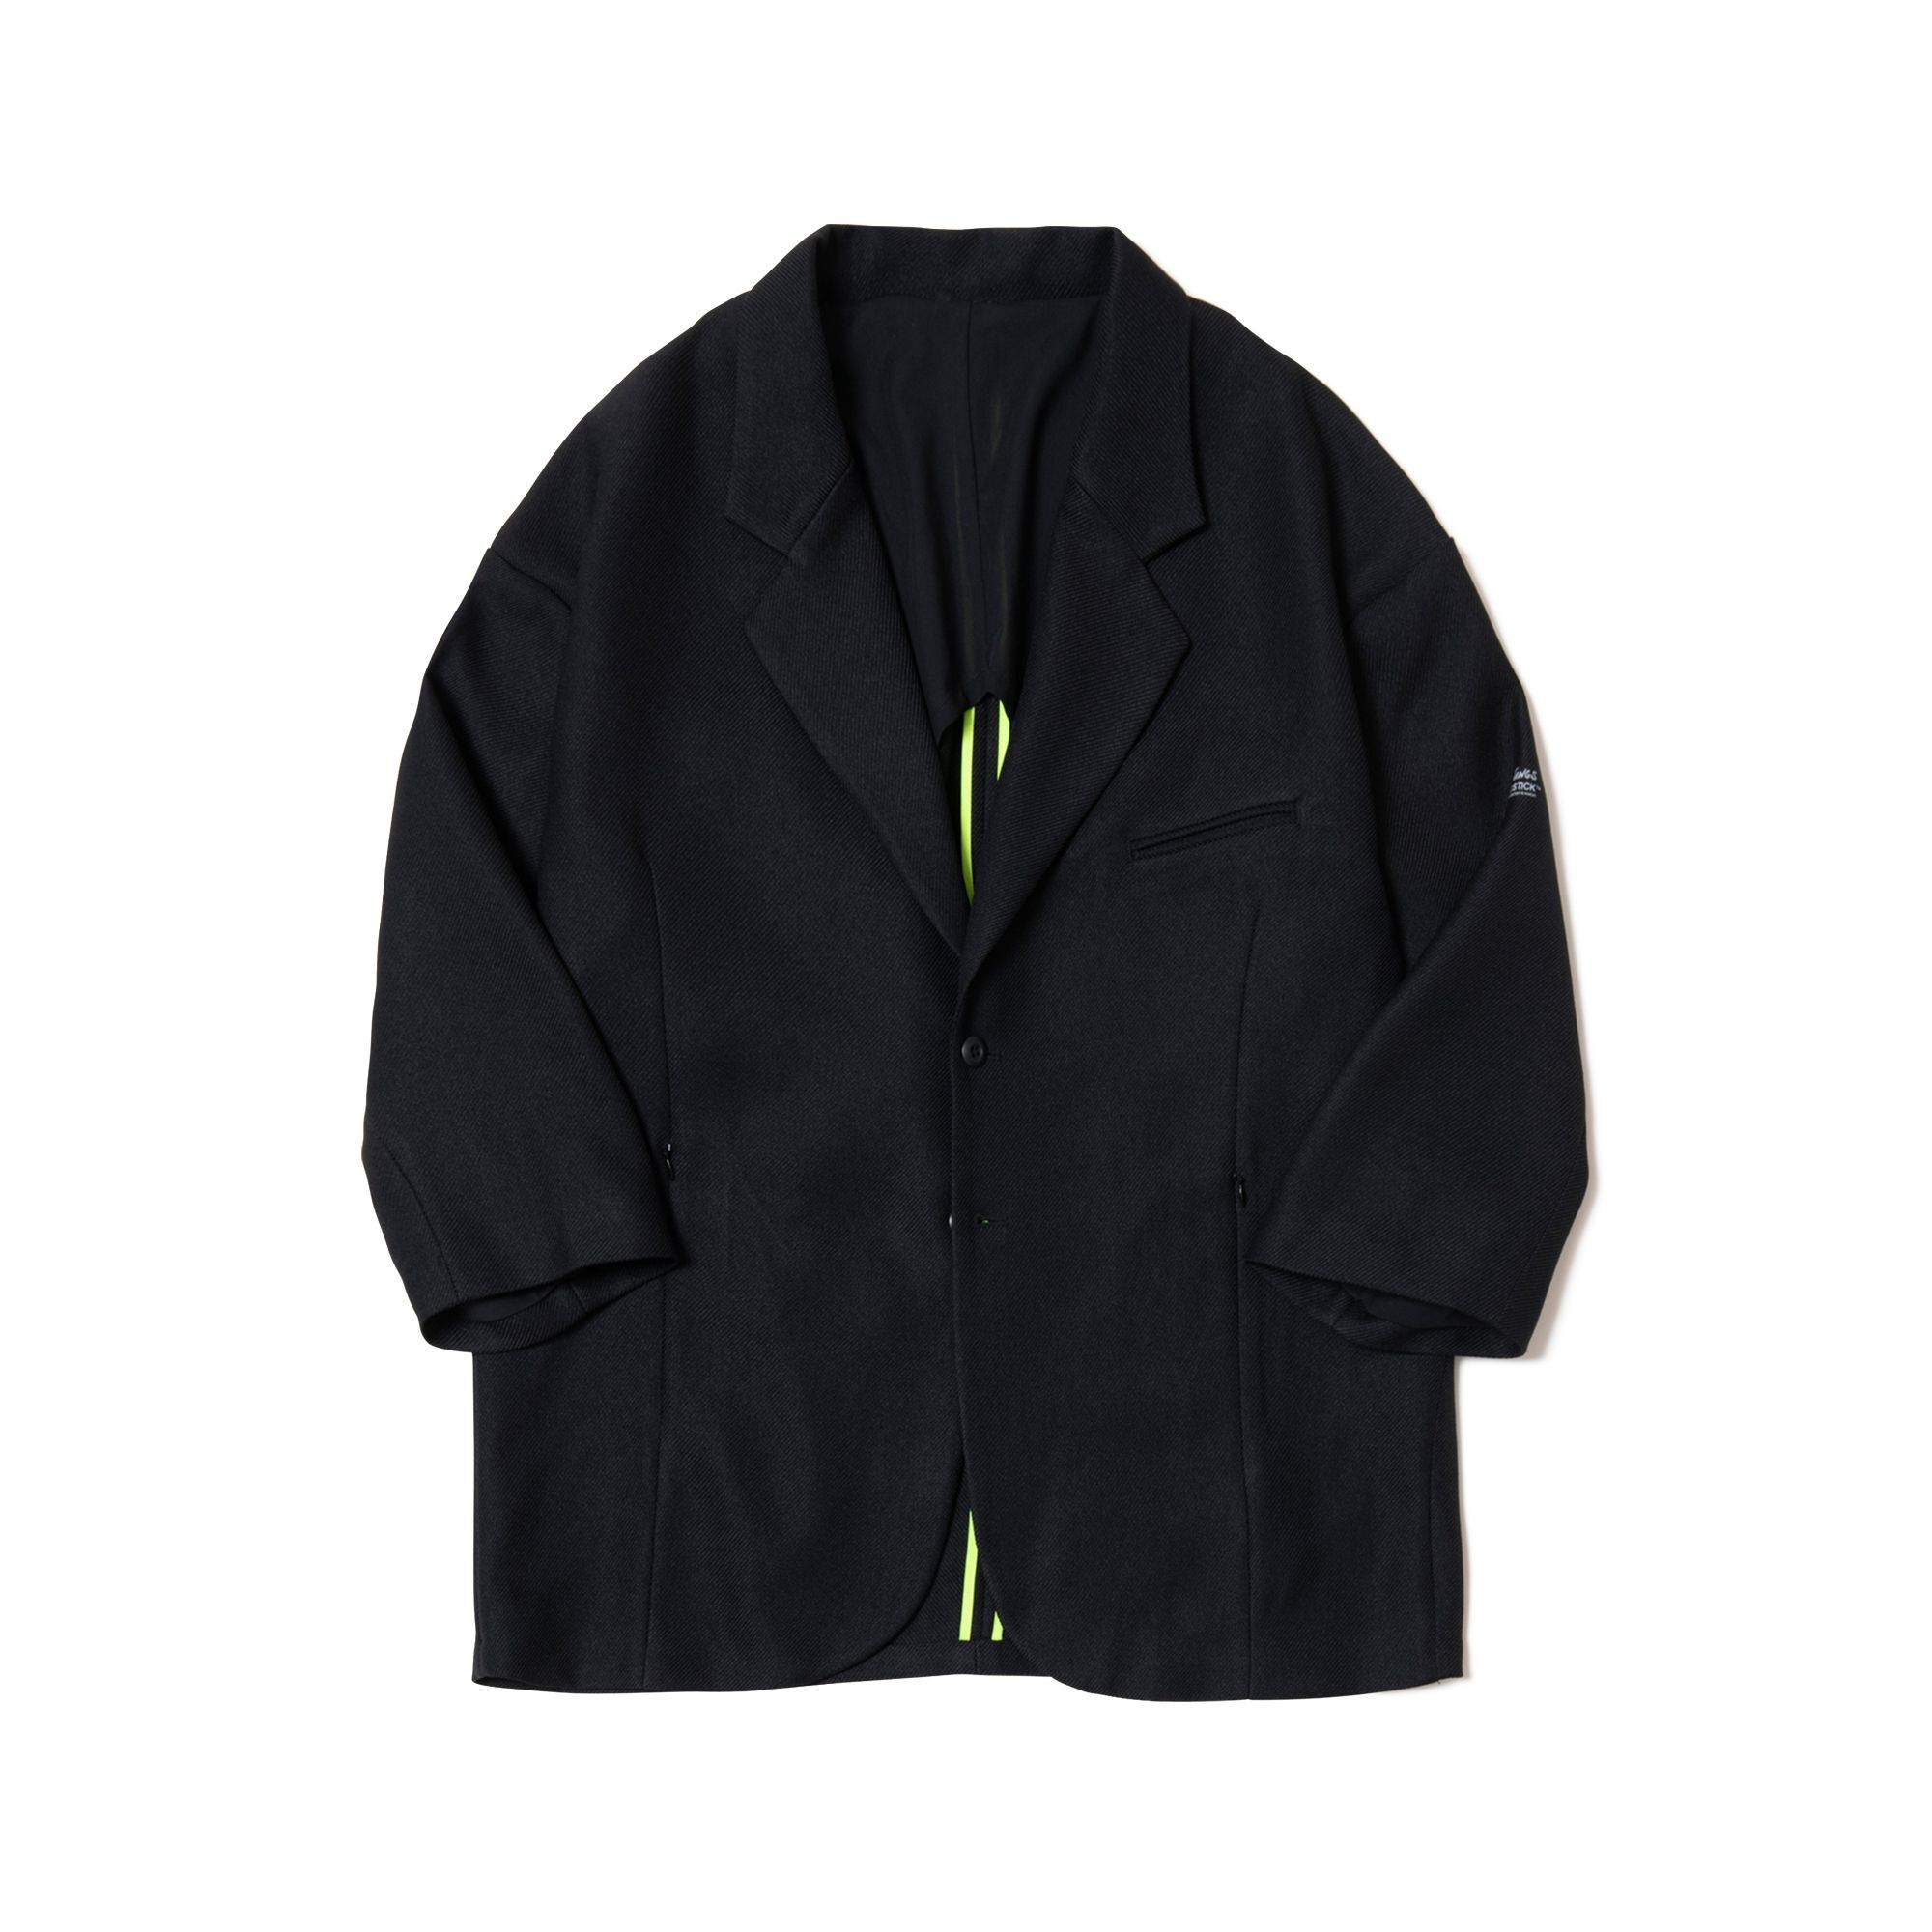 MAGIC STICK WATER RESISTANT 2B JACKET by Wild Things® BLACK